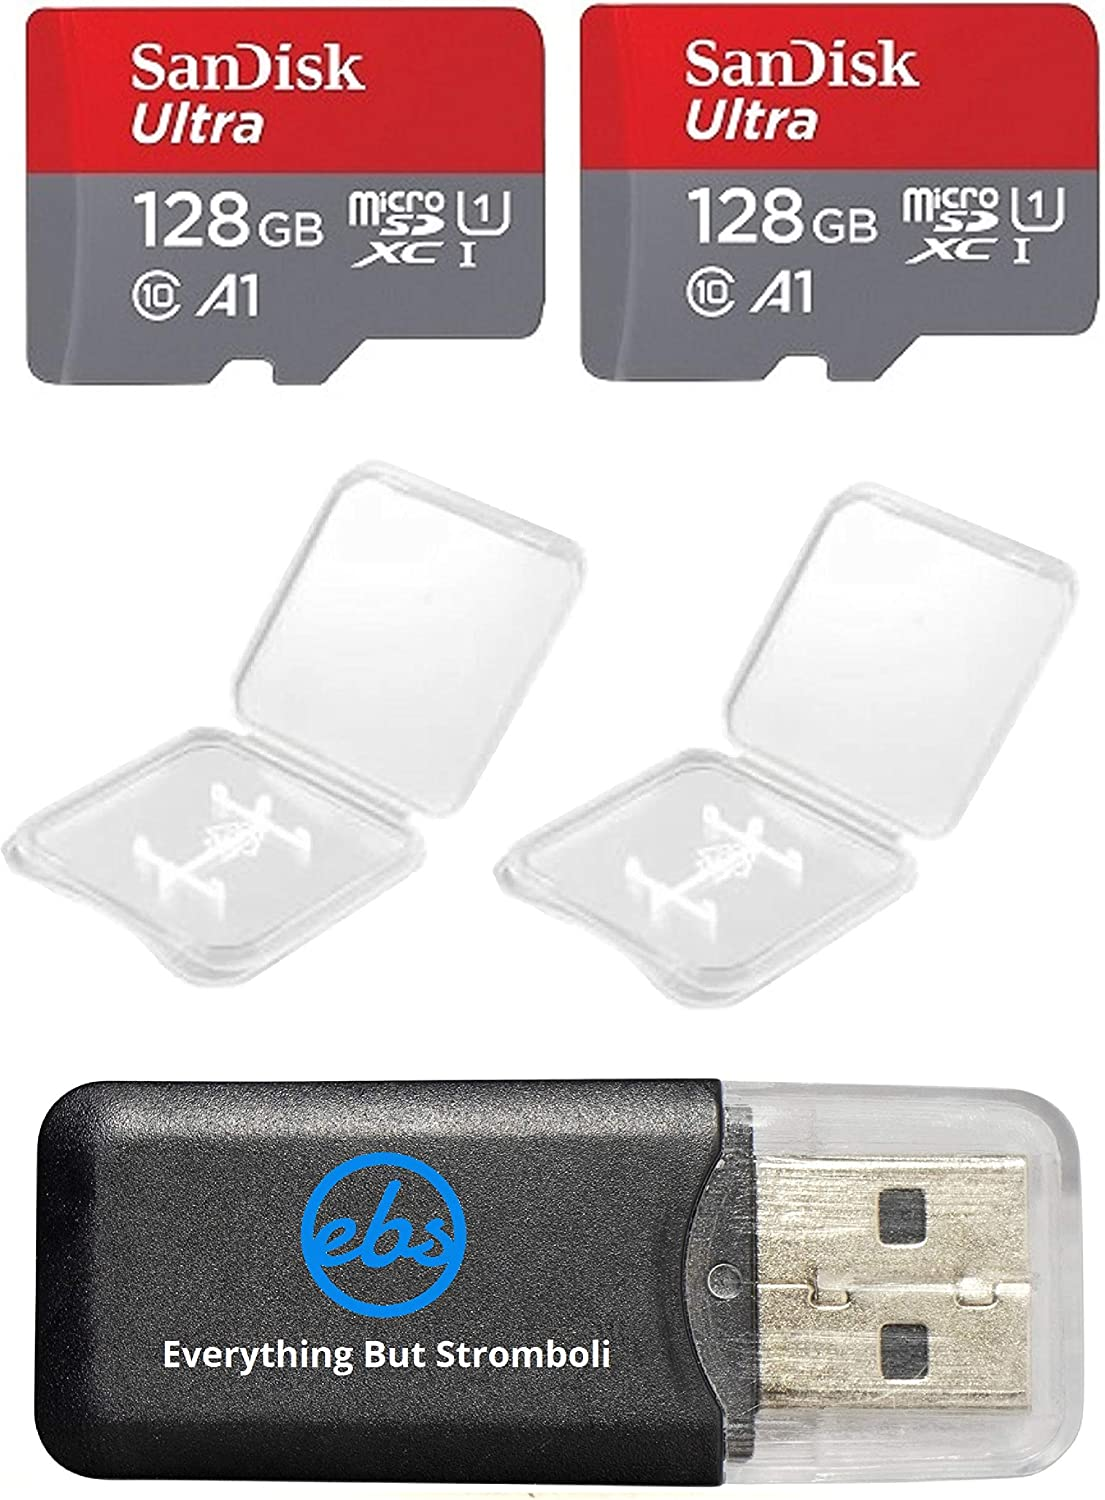 2 Pack - SanDisk Ultra 128GB Micro SD SDXC Memory Flash Card UHS-I Class 10 SDSQUAR-128G-GN6MN Wholesale Lot with 2 Plastic Jewel Cases and Everything But Stromboli (TM) Card Reader